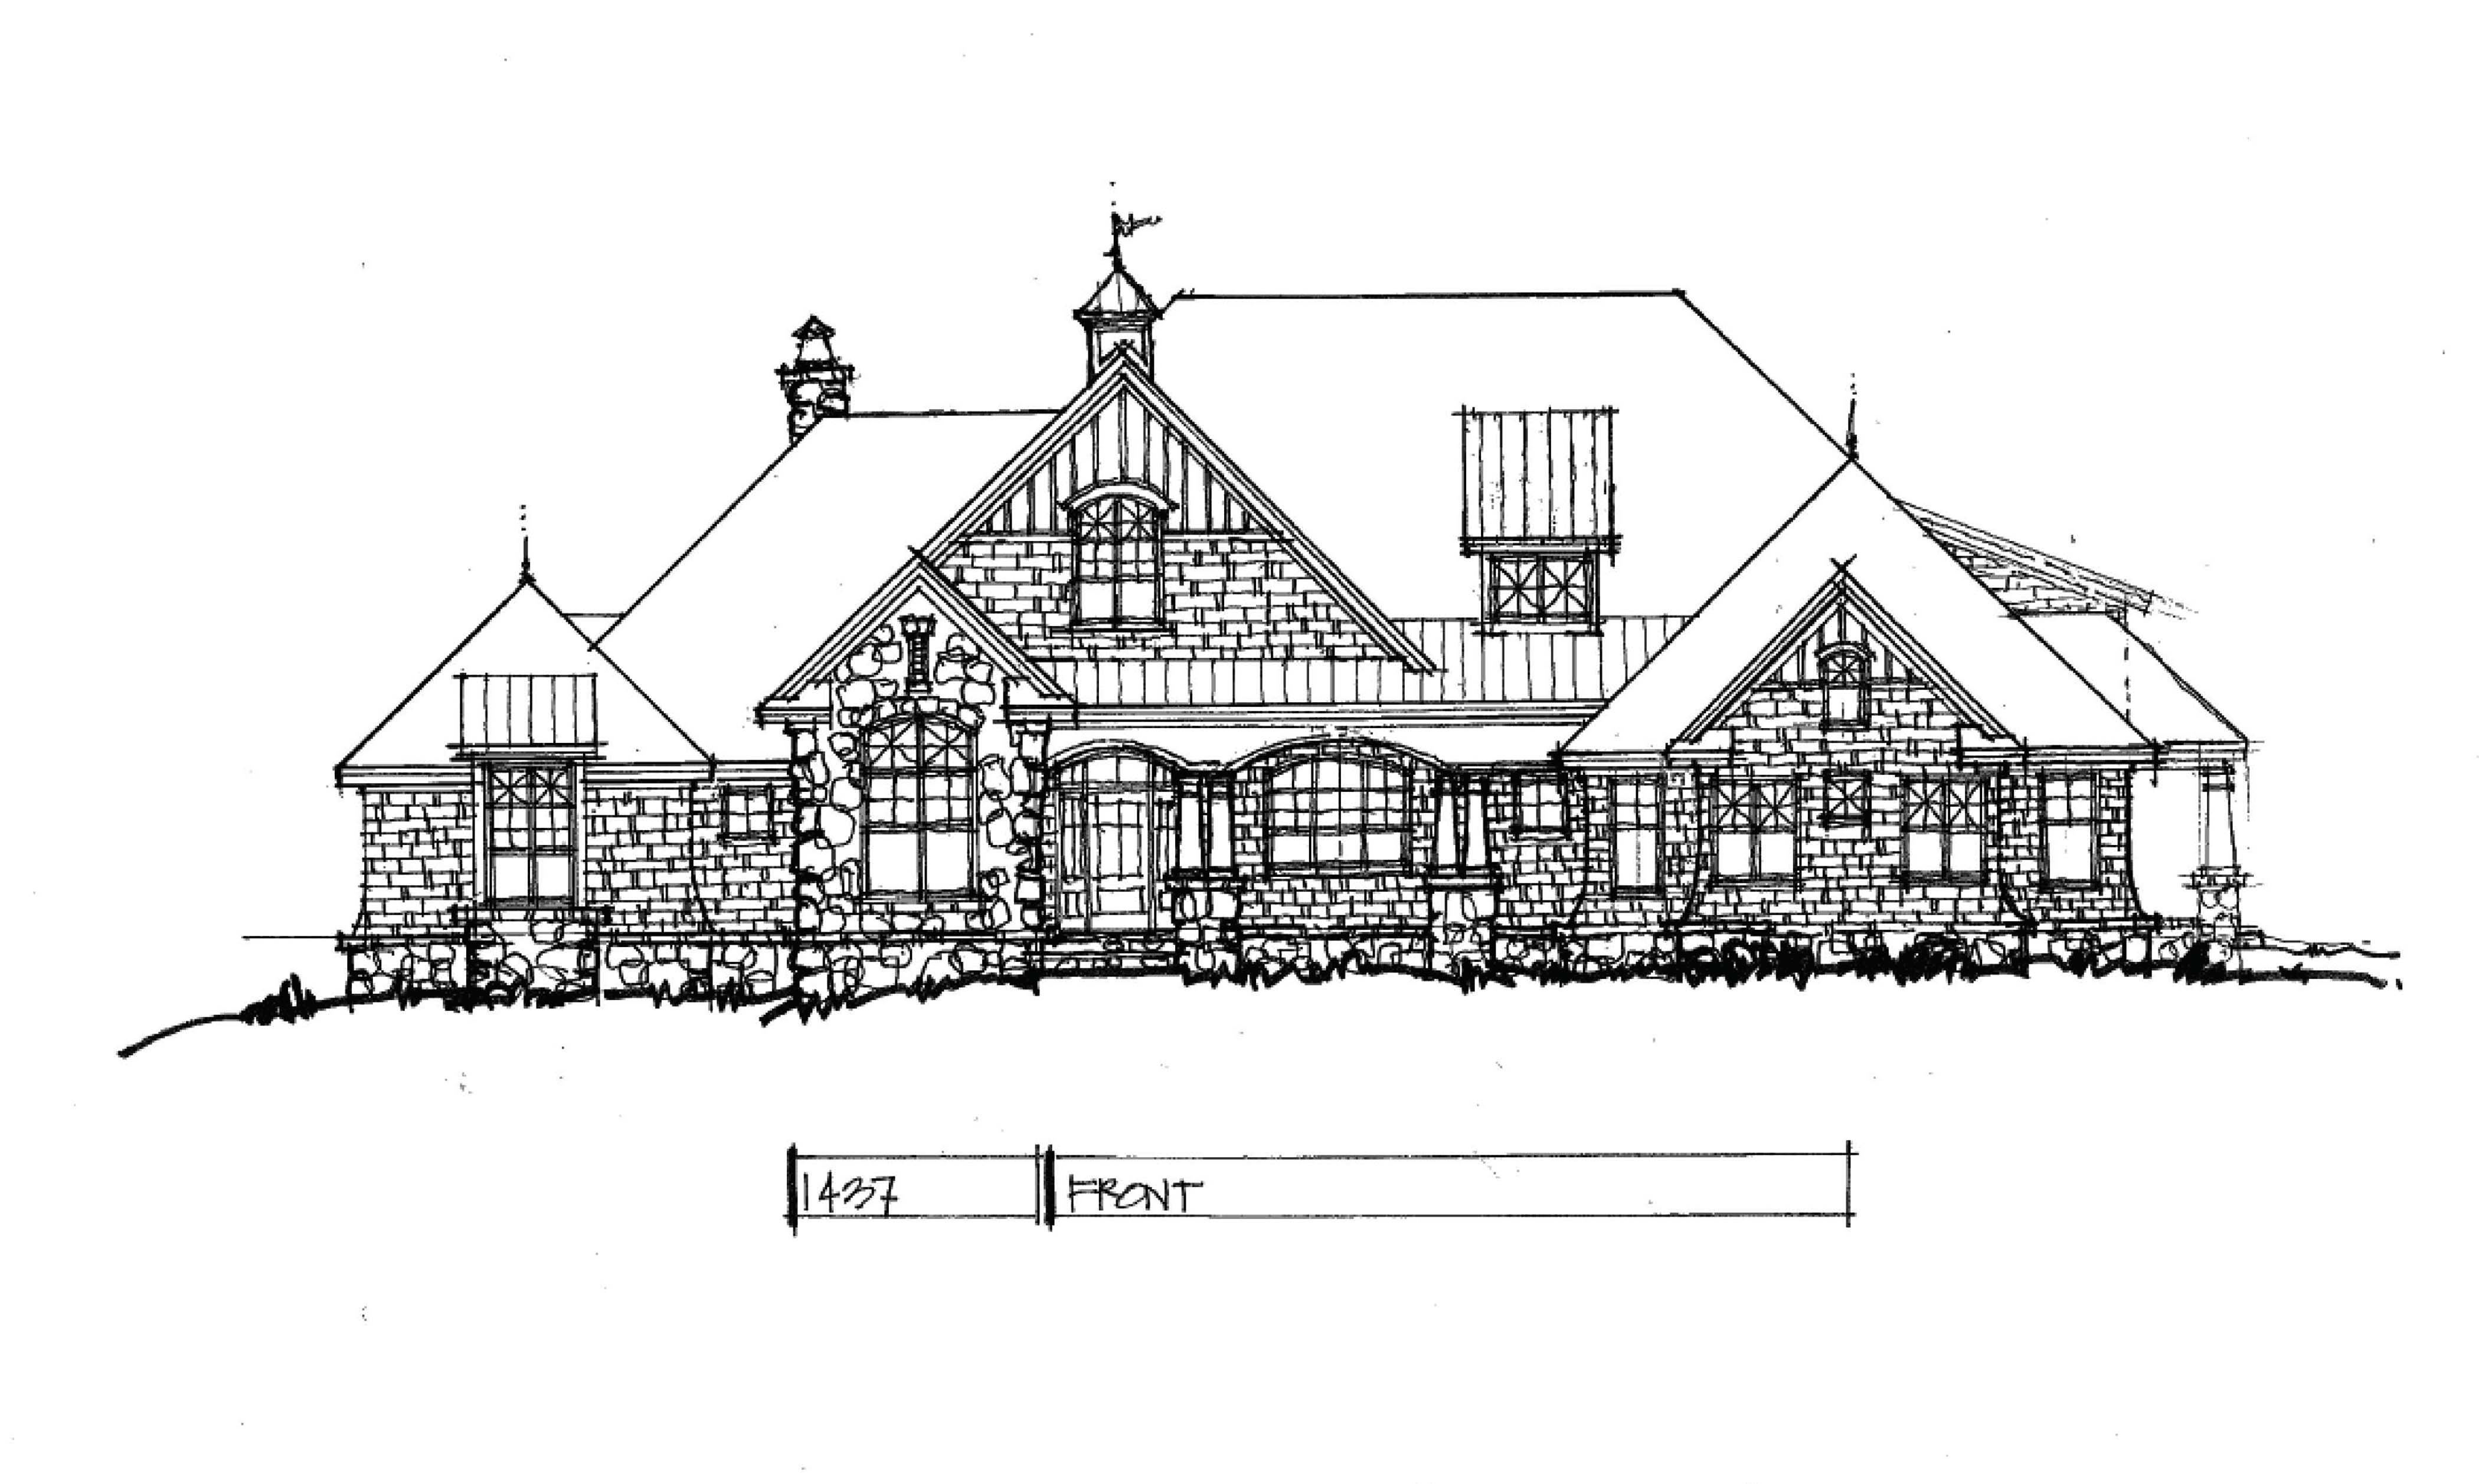 Craftsman house plan 1437 front rendering